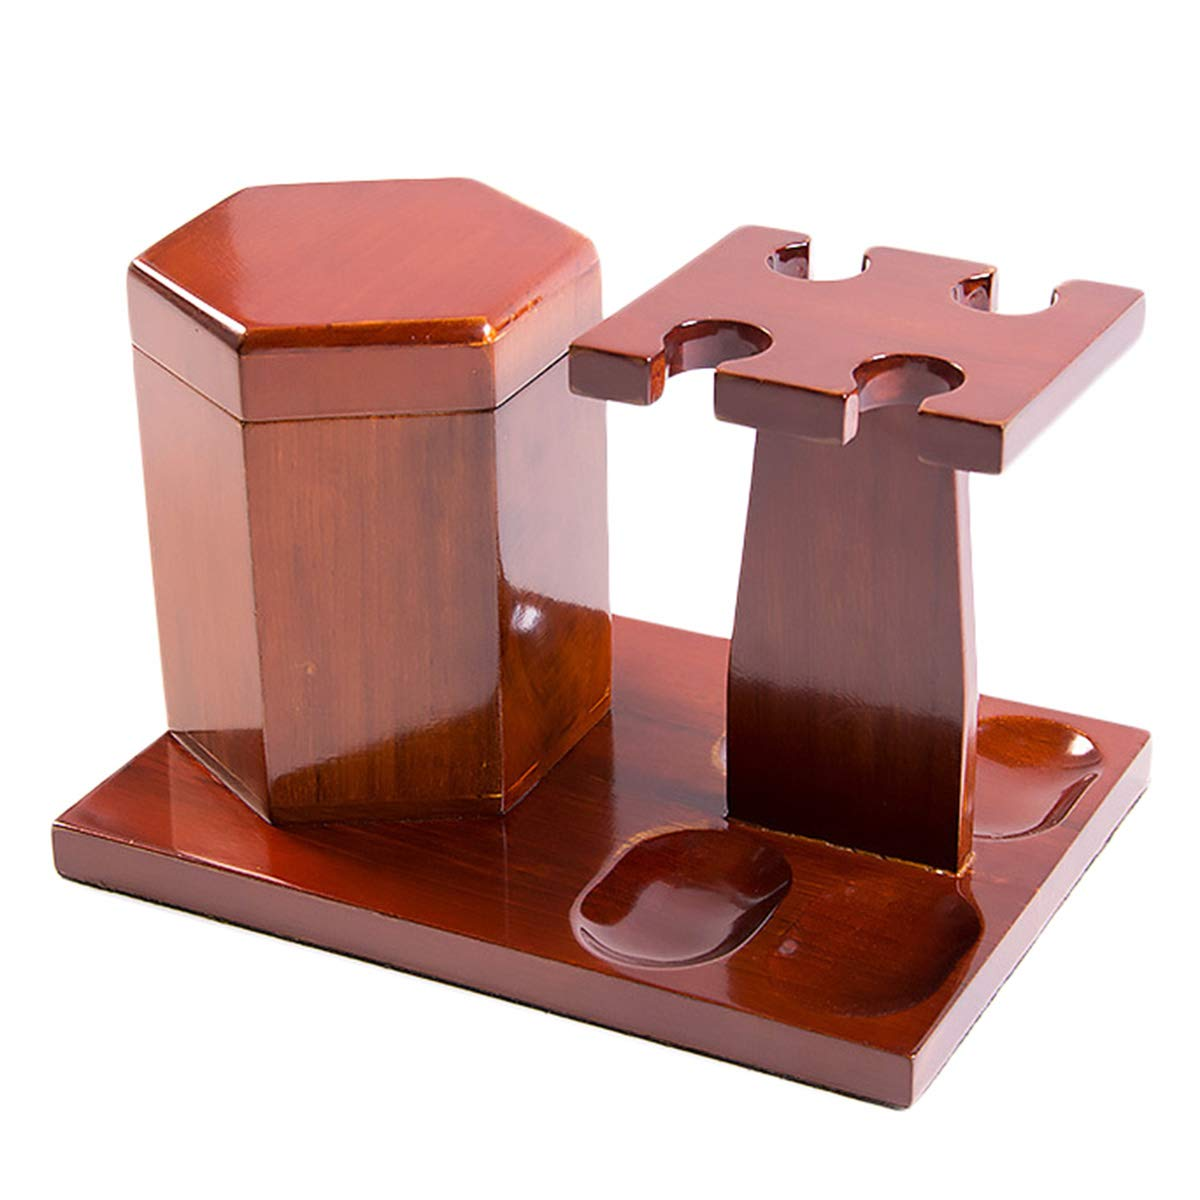 LUCKFY Tobacco Pipe Rack - 4 Pipes - with Tobacco Storage Tank,Wooden,Smooth,Hand Made by LUCKFY